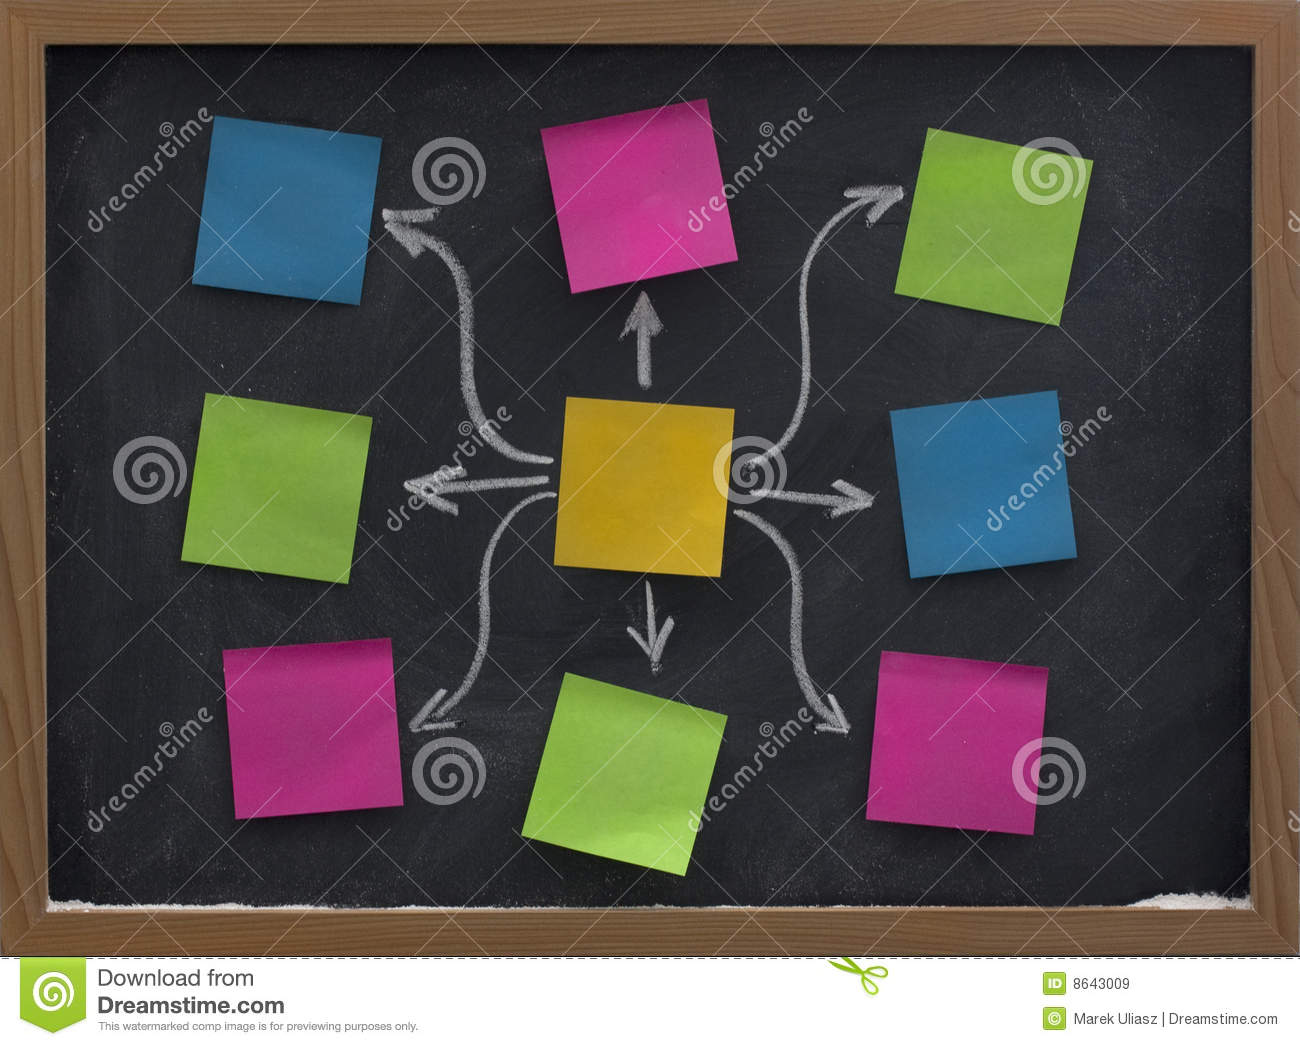 Blank mind map or flow diagram made of colorful sticky notes posted on ...